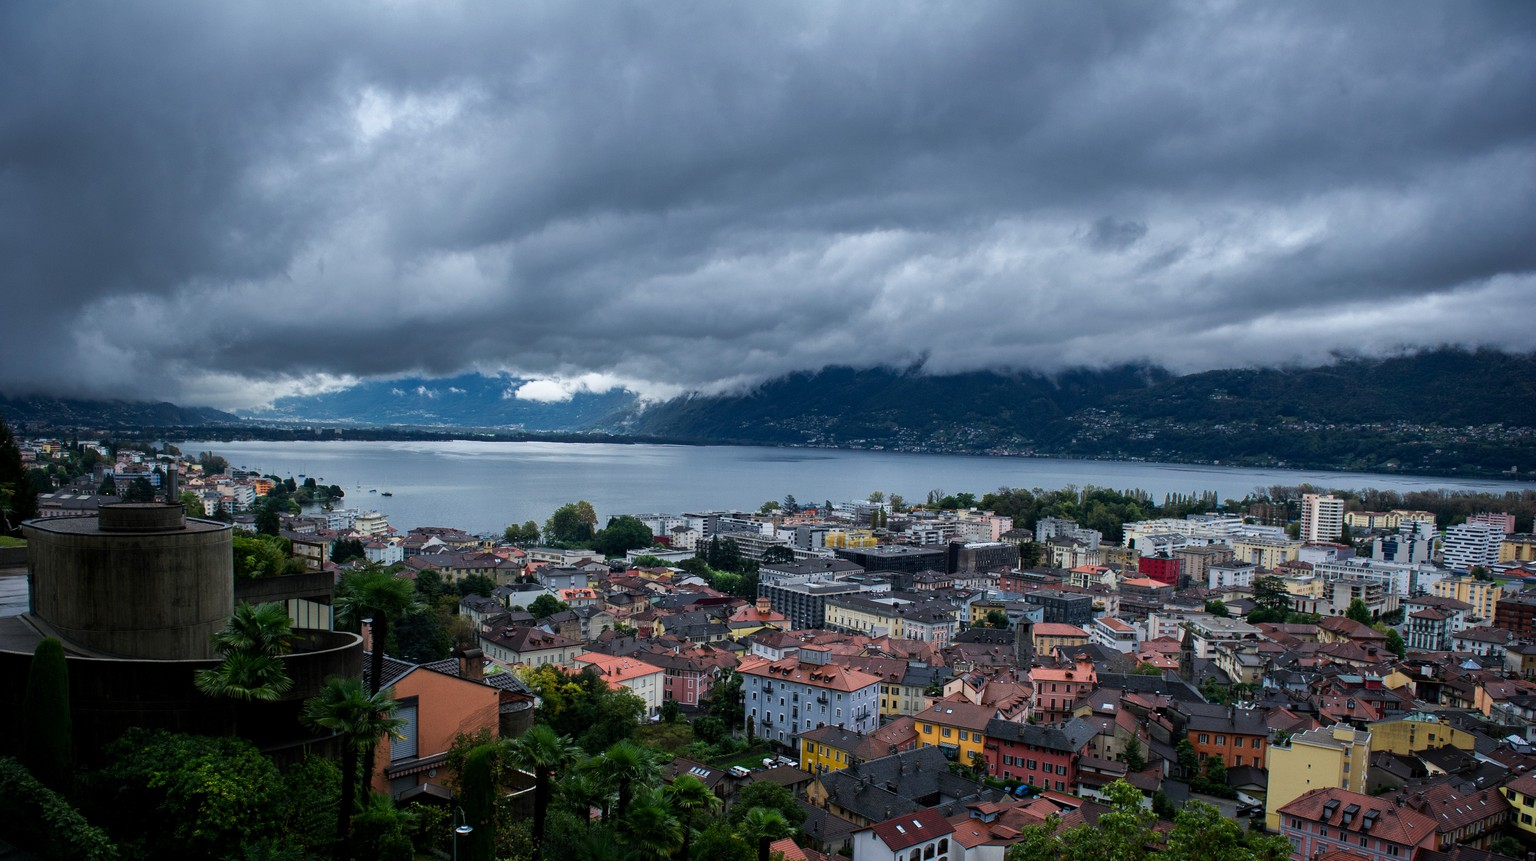 Dunkle Wolken ueber Locarno, aufgenommen am Montag, 13. Oktober 2014. Das Tessin wird derzeit von heftigen Regenfaellen heimgesucht. Gebietsweise seien im Tessin von Sonntag auf Montag bis zu 100 Liter Regen pro Quadratmeter gefallen, erklaerte MeteoSchweiz. In den kommenden 24 Stunden sei noch einmal die gleiche Regenmenge zu erwarten.(KEYSTONE/Ti-Press/ Carlo Reguzzi)